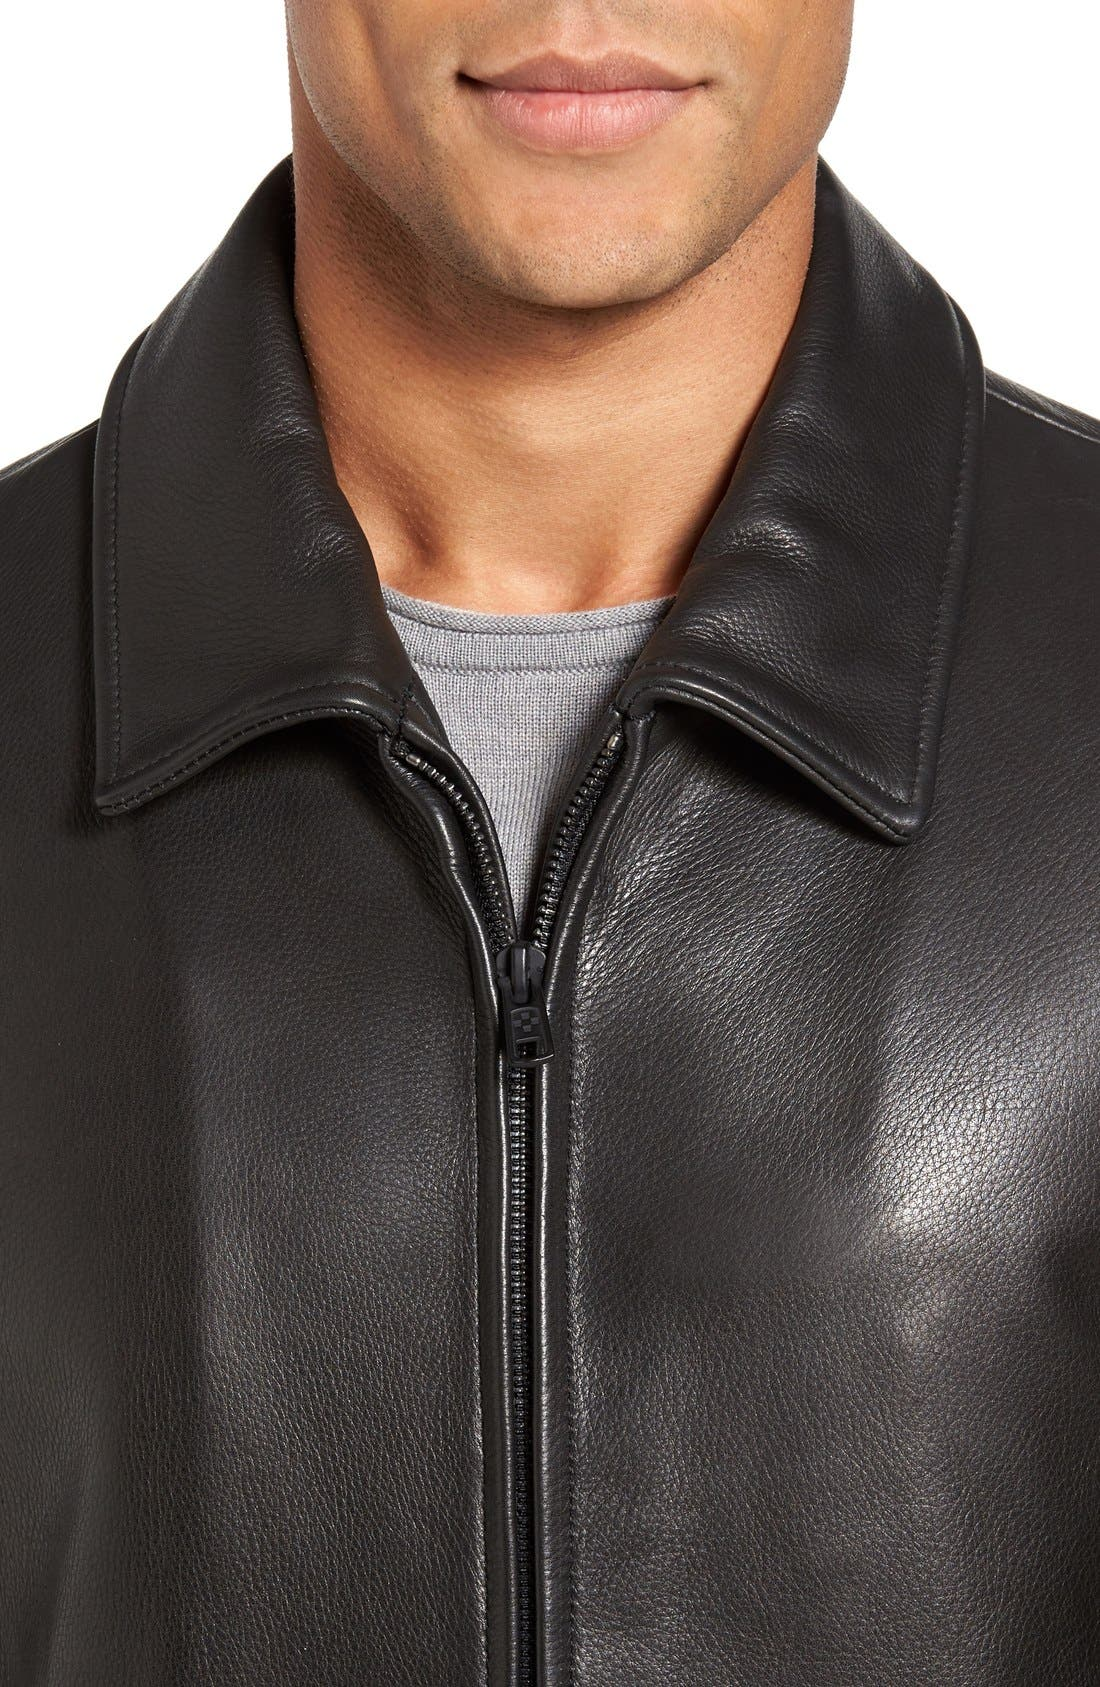 Leather Zip Front Jacket,                             Alternate thumbnail 4, color,                             Black